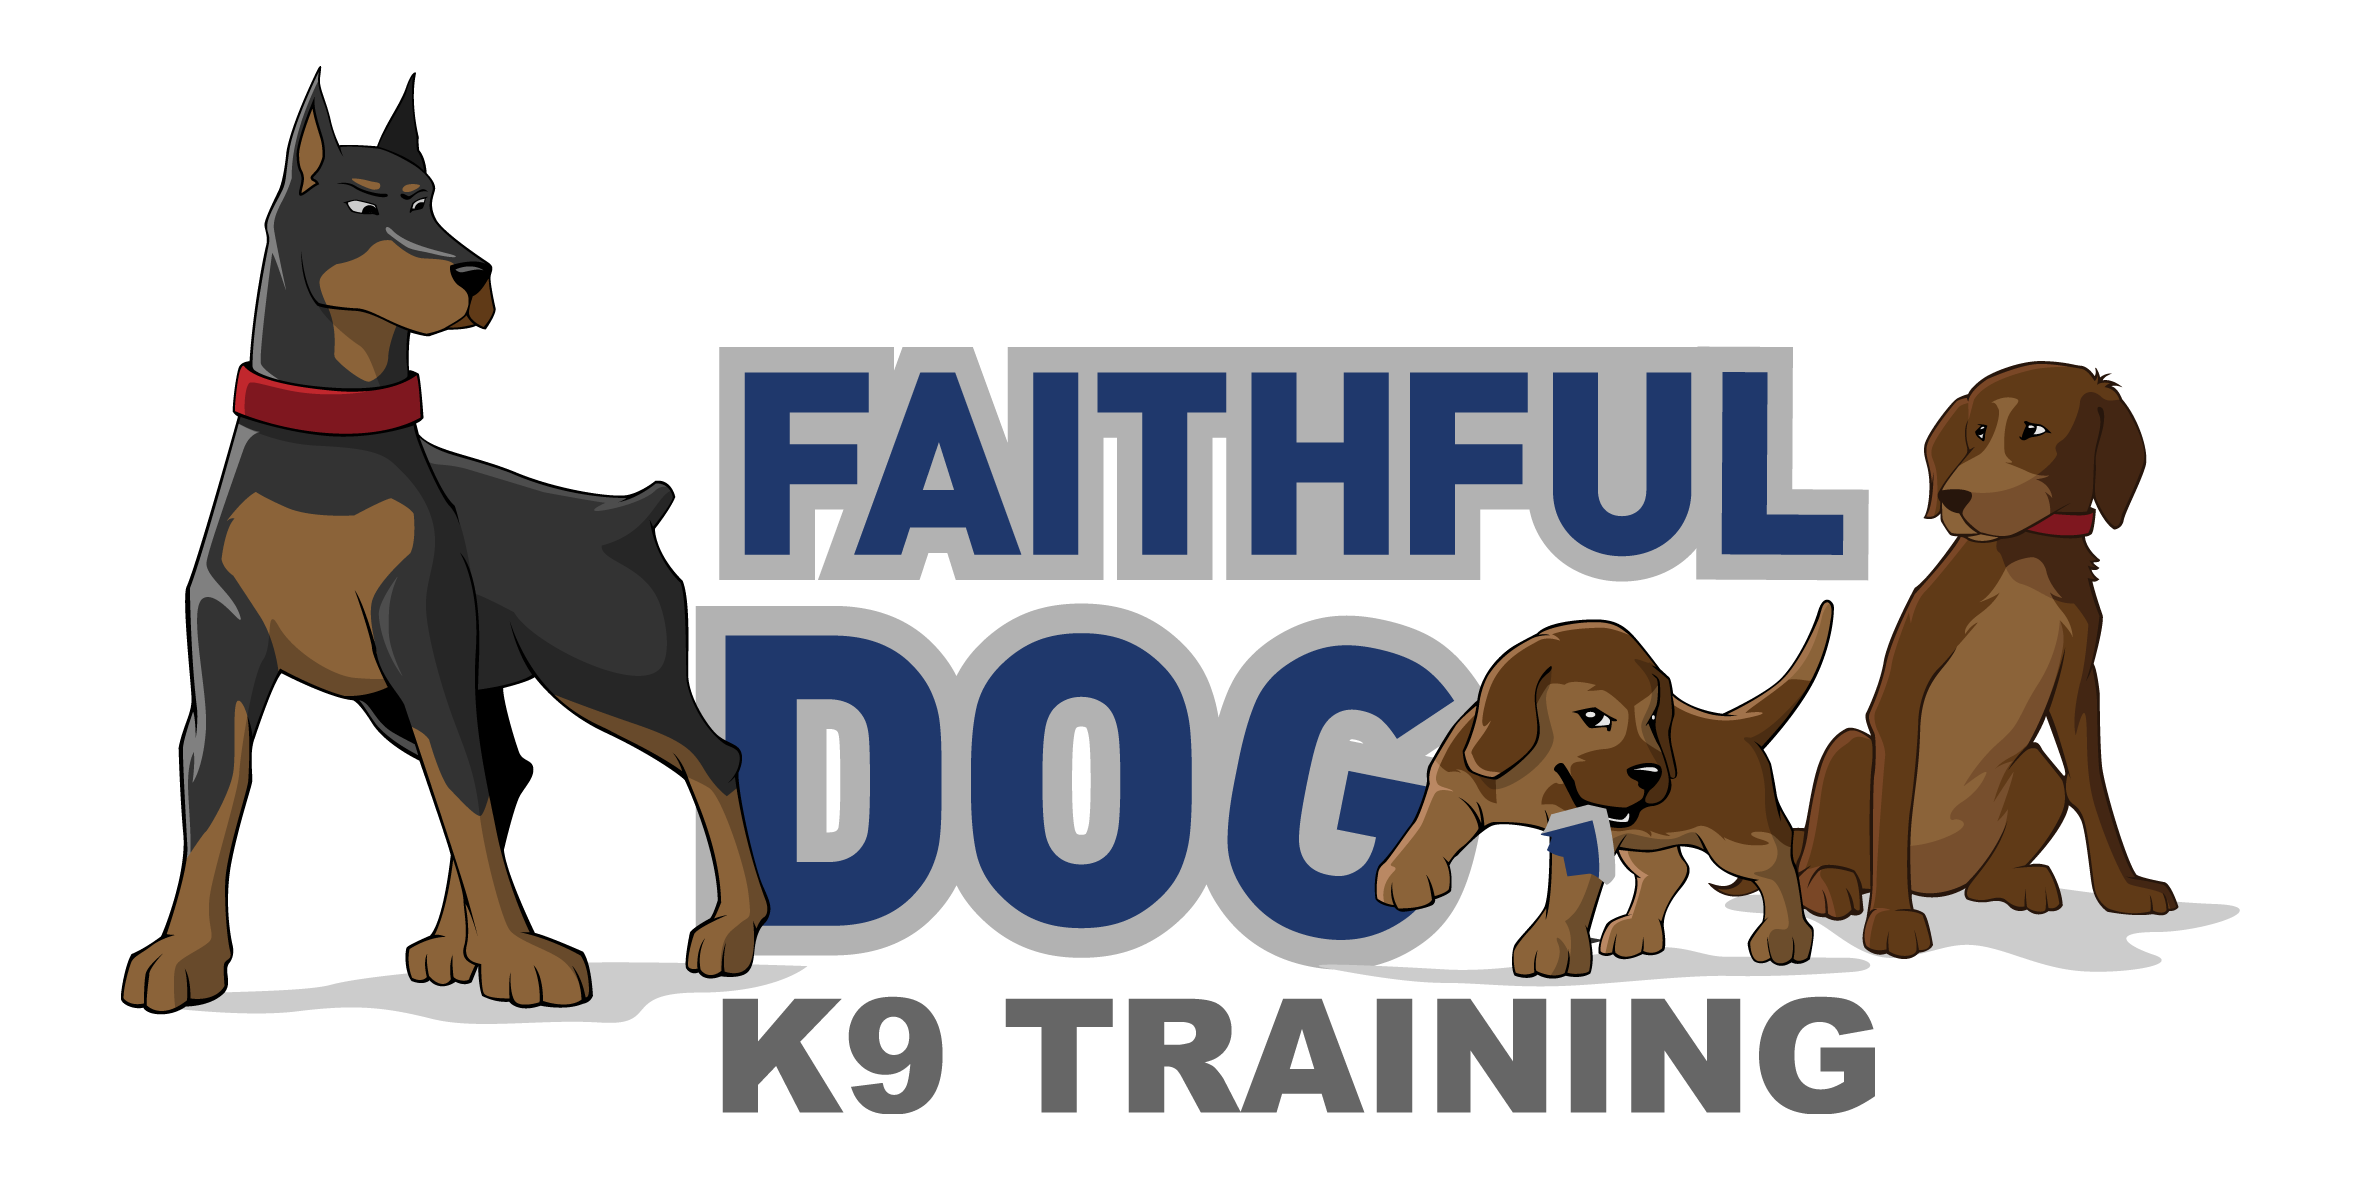 Create the first and only business logo for Faithful Dog K9 Training